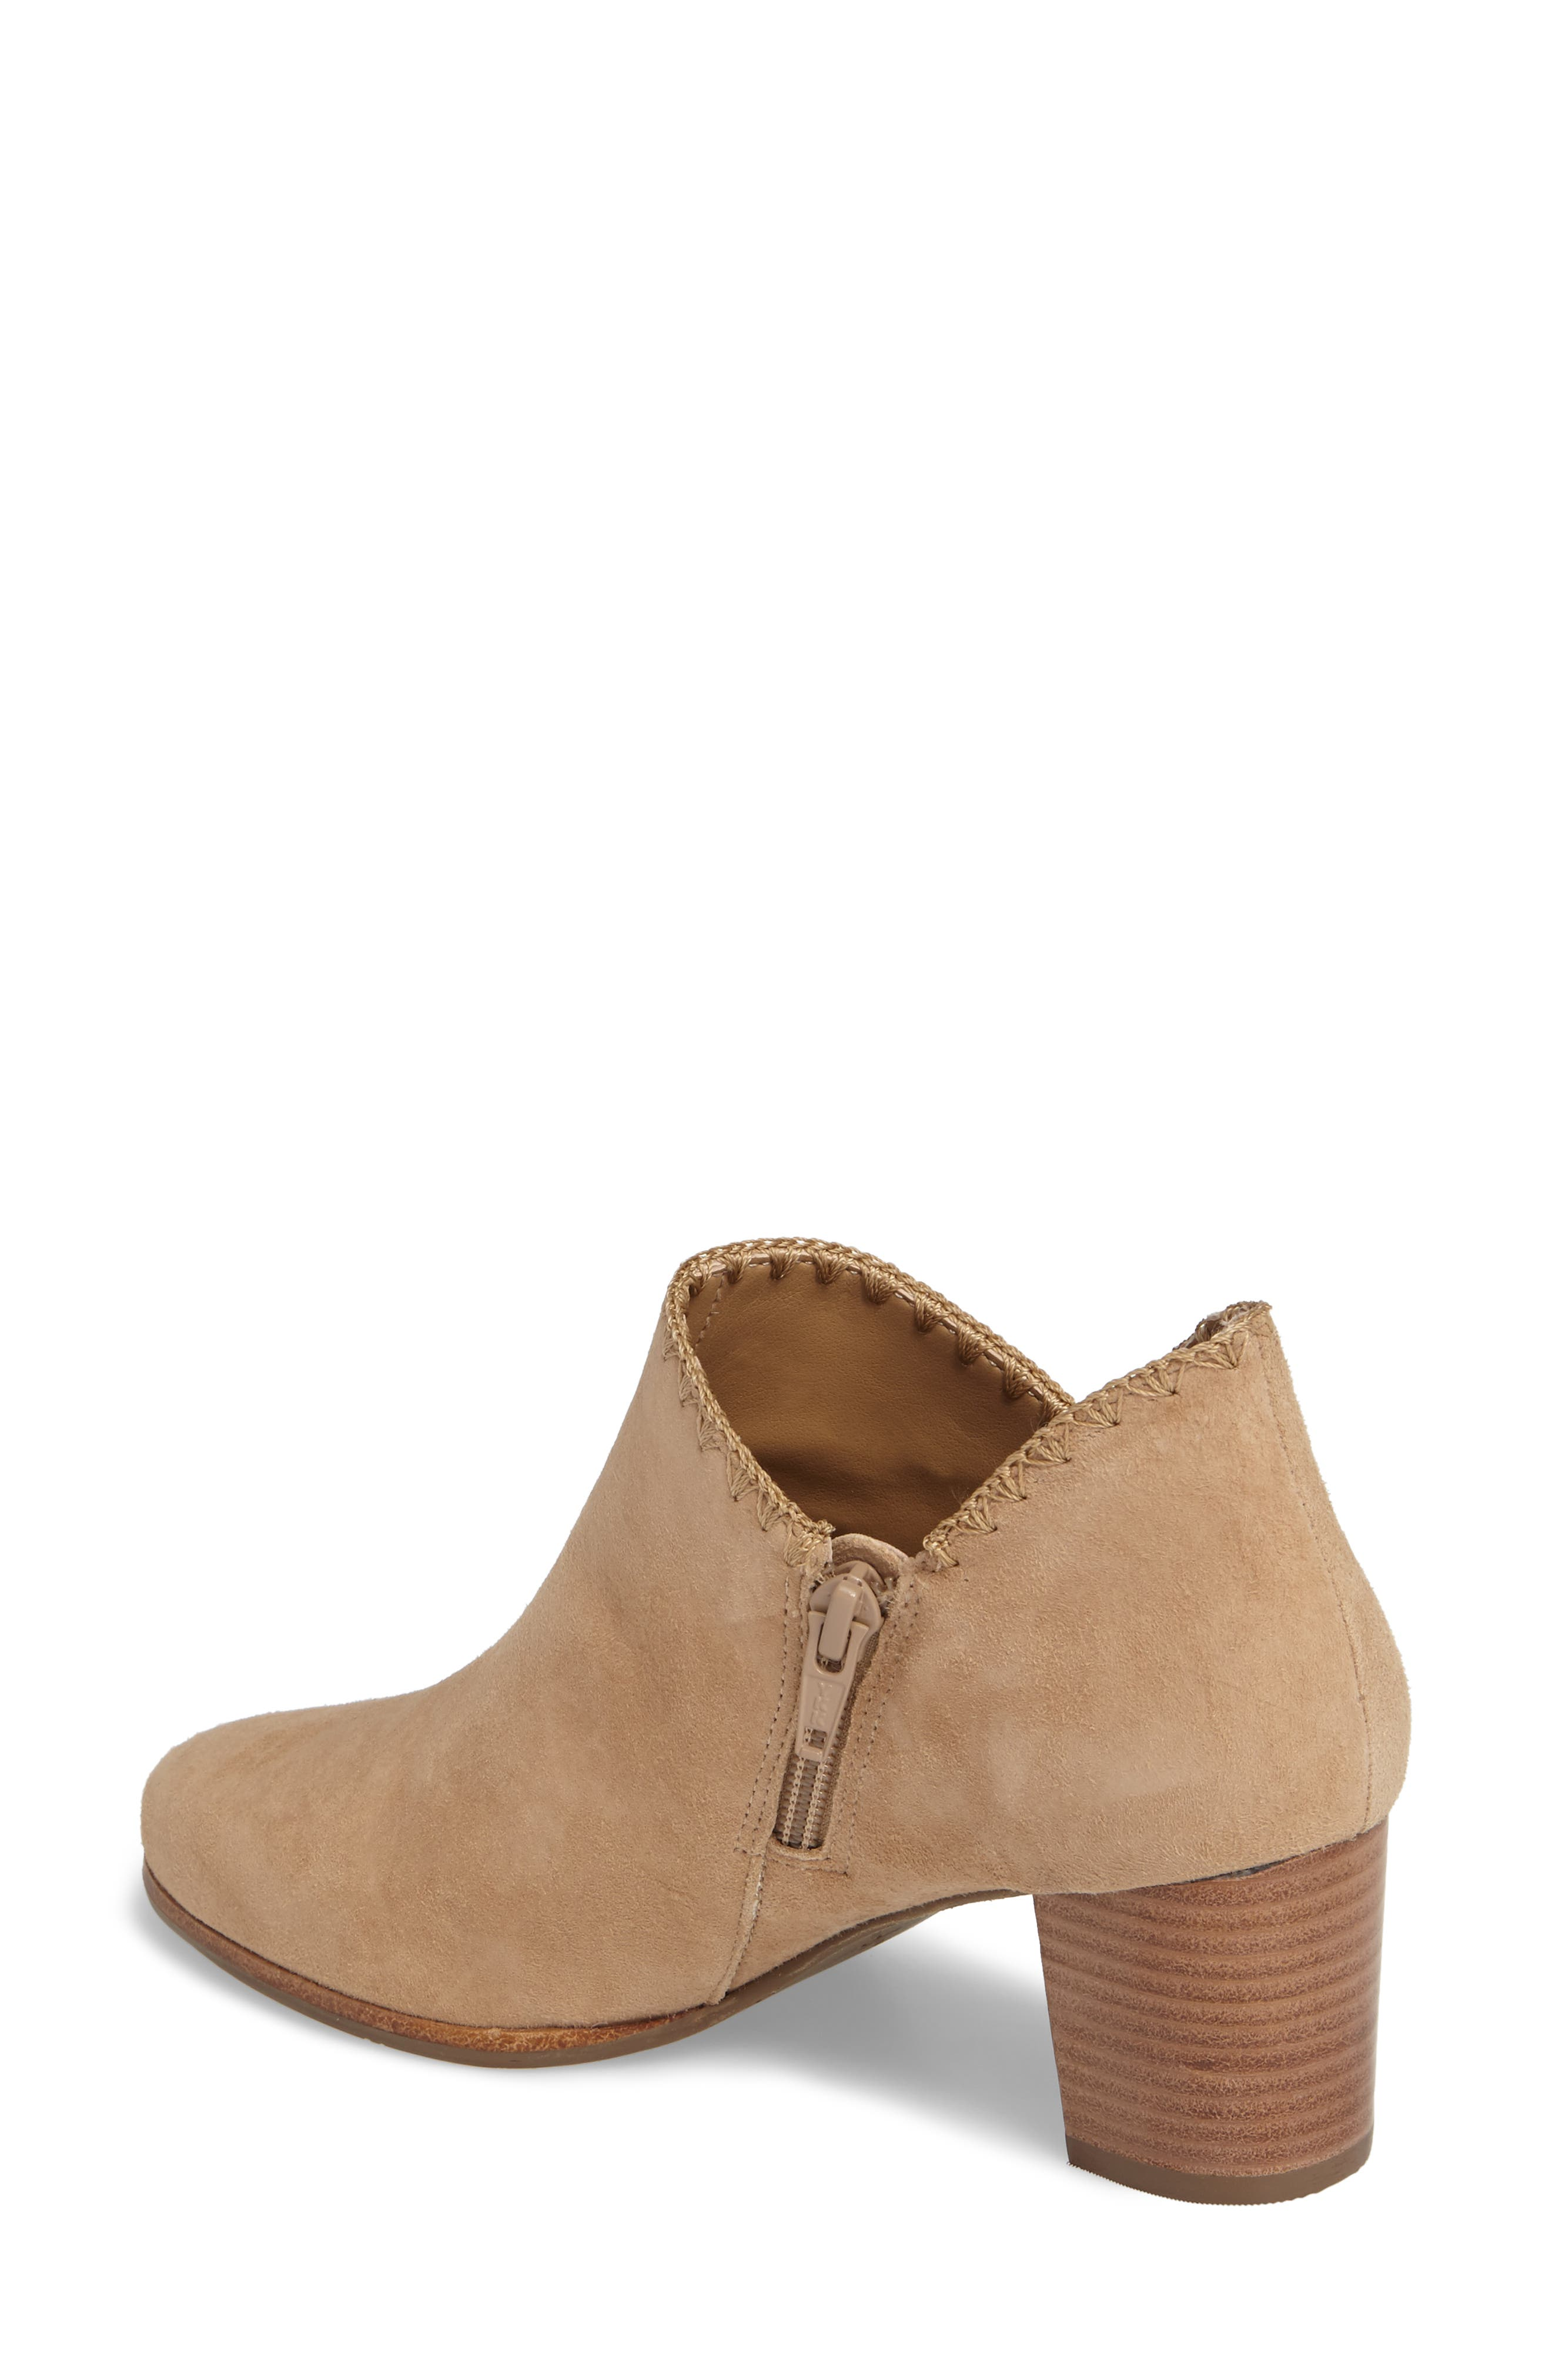 Marlow Bootie,                             Alternate thumbnail 11, color,